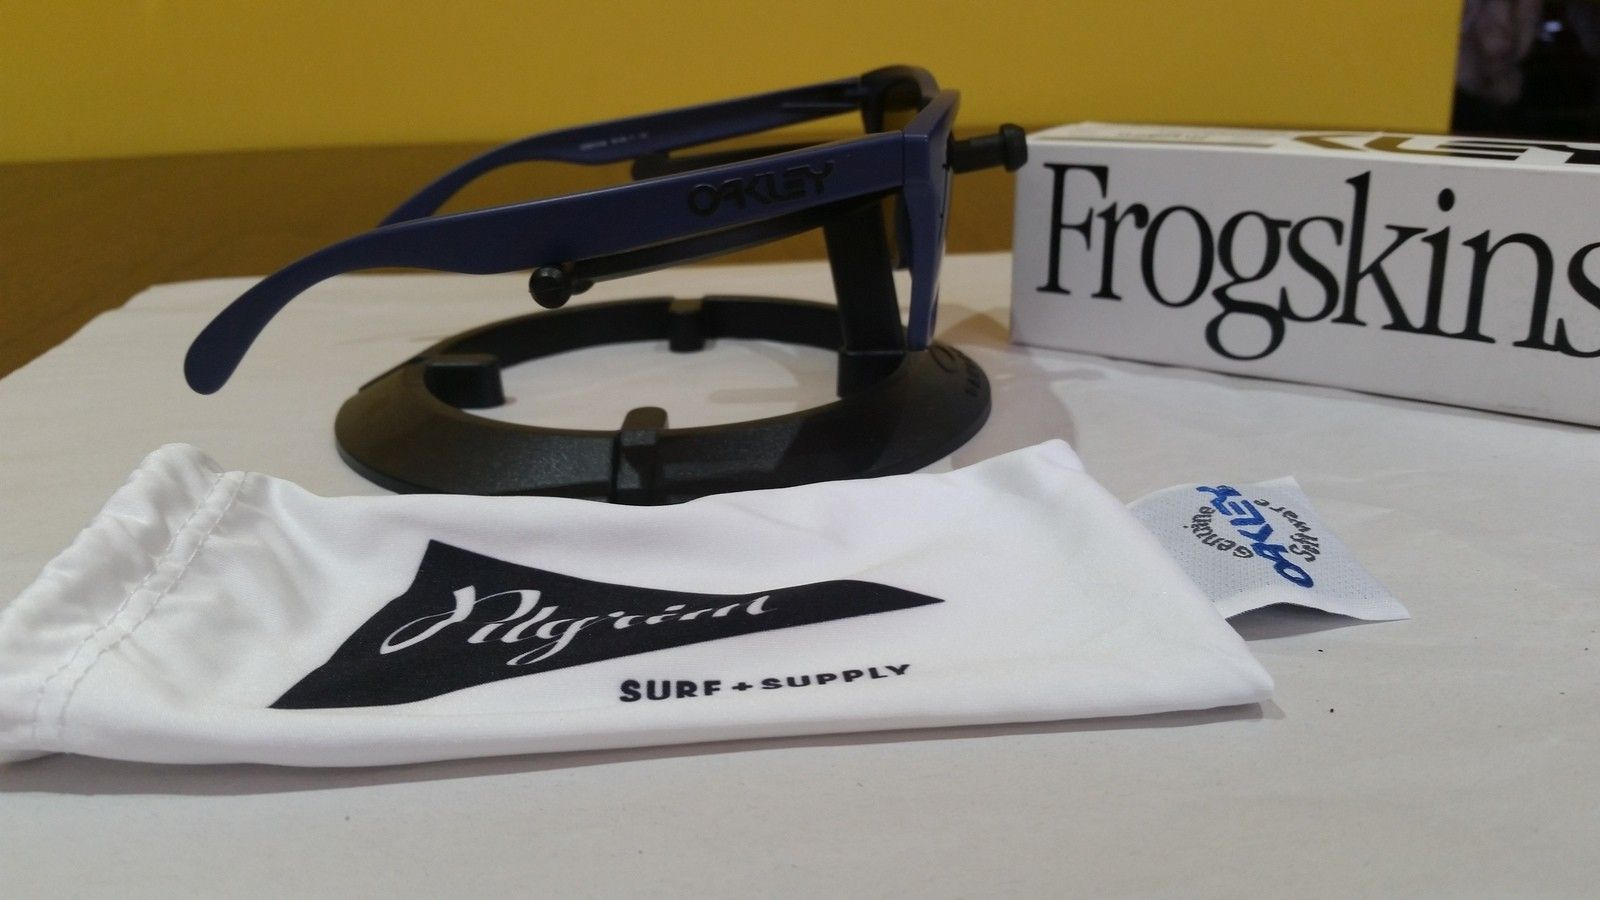 A few Frogskins for sale(1 more added and a couple of price drops) - 20150811_105812.jpg